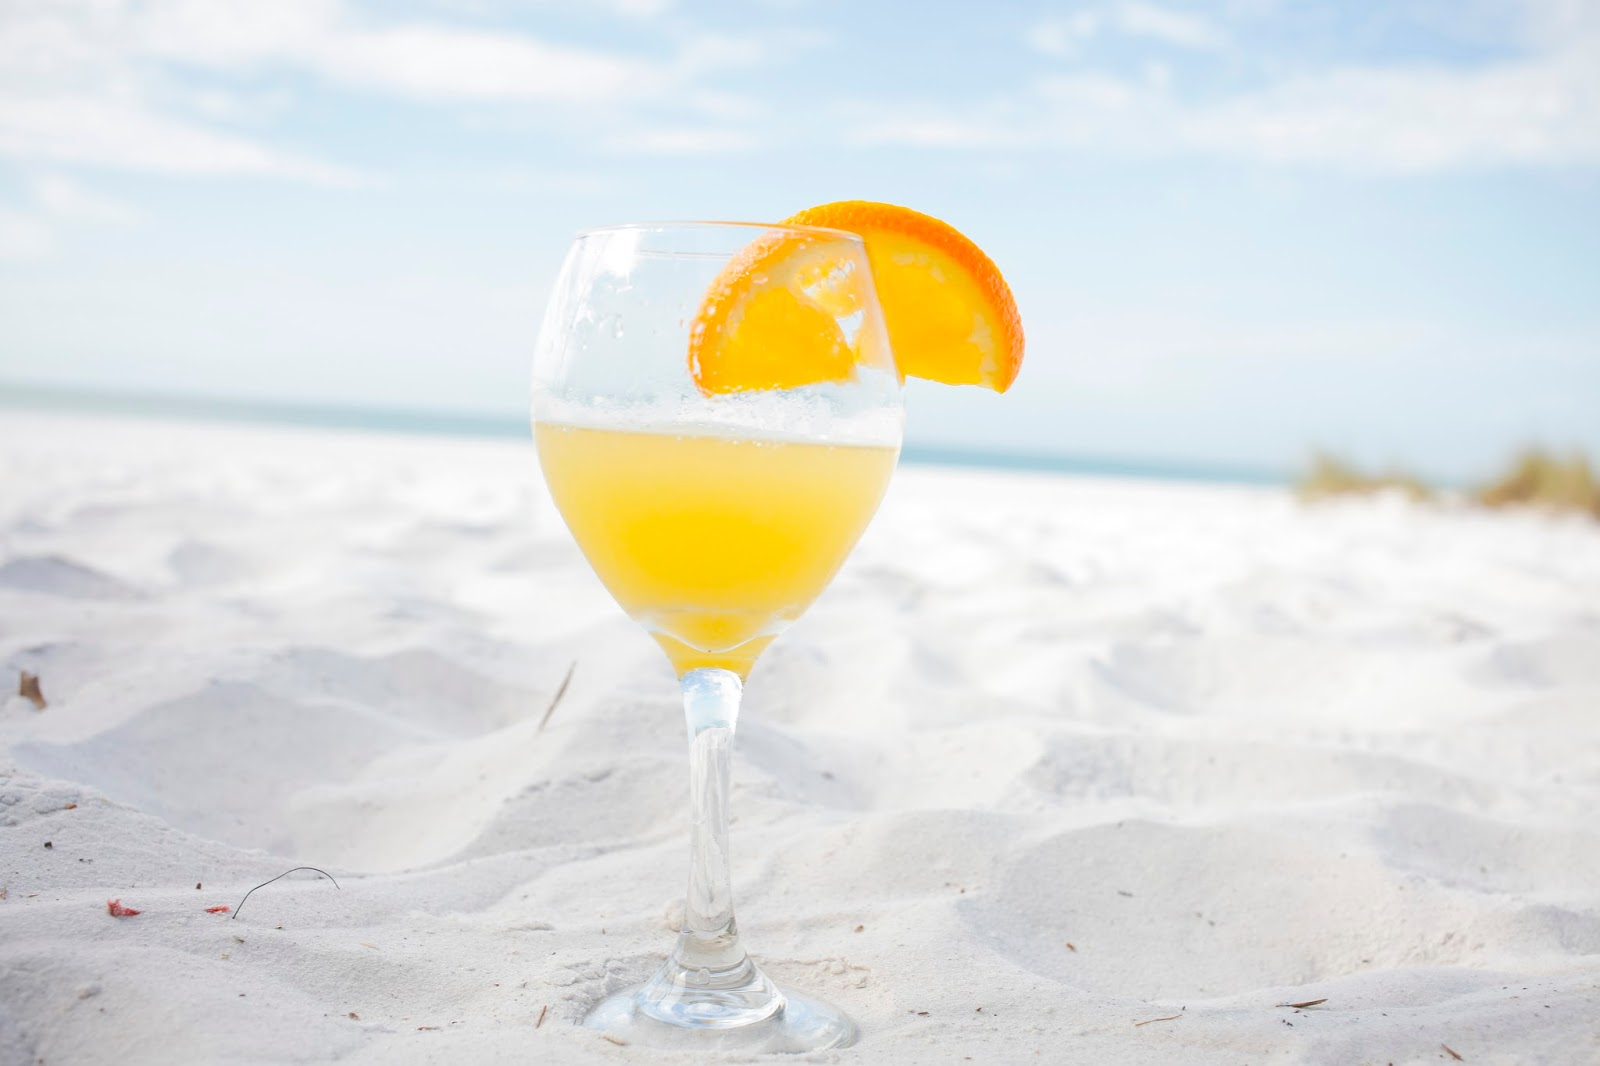 A mimosa on the beach